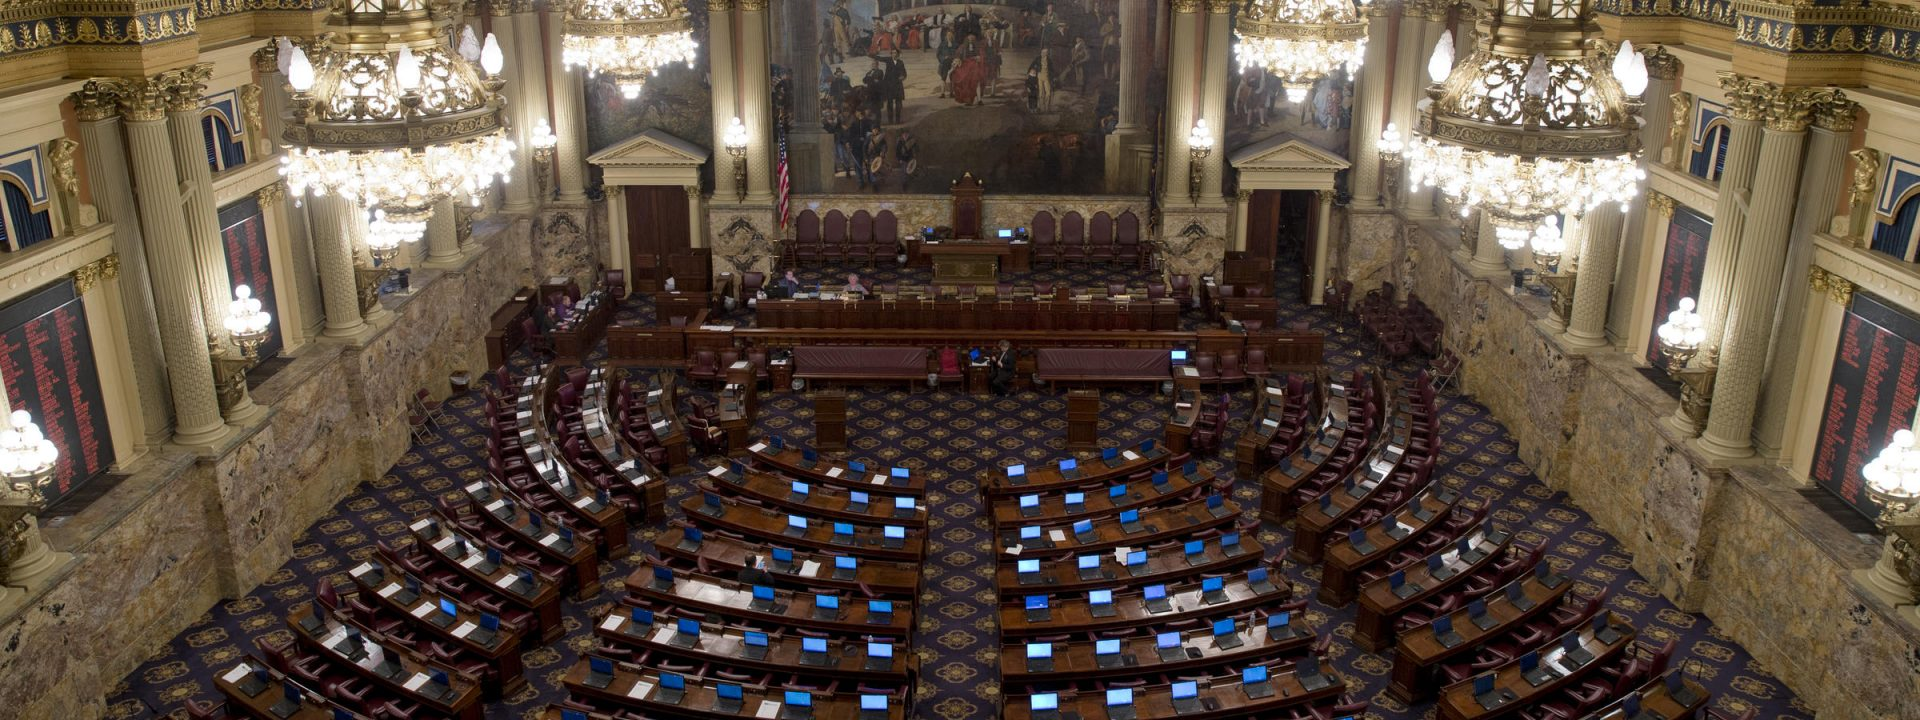 Shown is the Pennsylvania House of Representatives chamber Tuesday, Dec. 8, 2015, in Harrisburg, Pa.